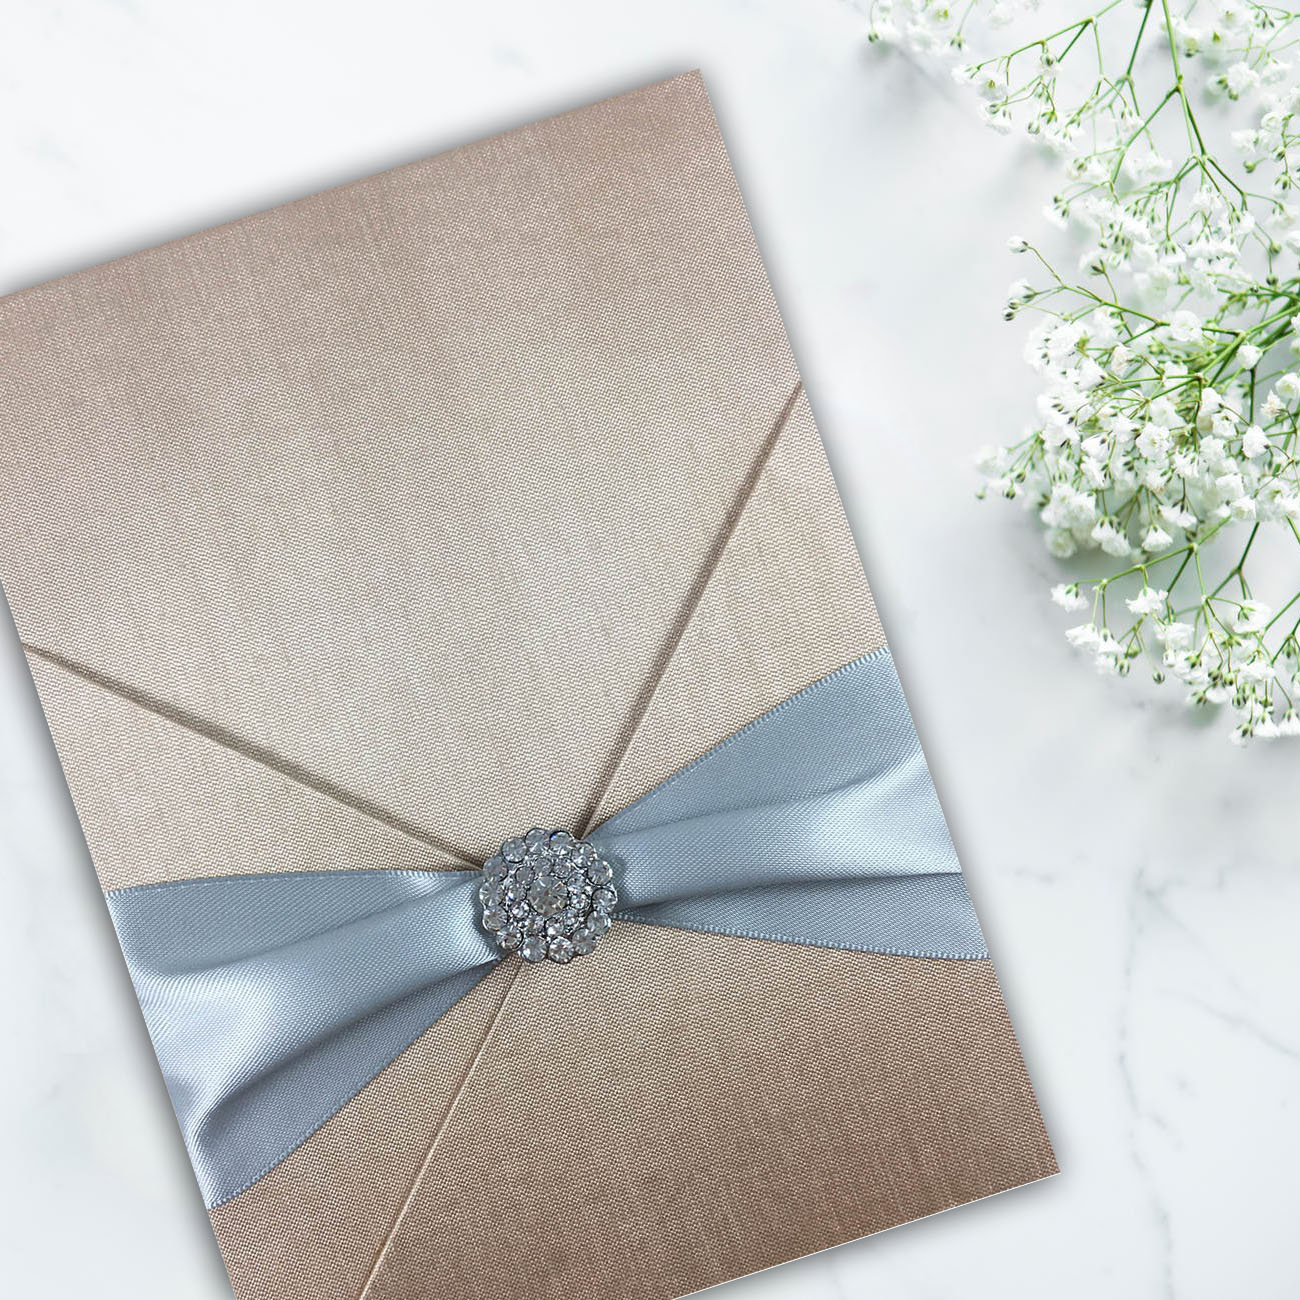 Silk card holder for luxury wedding and event invitation cards